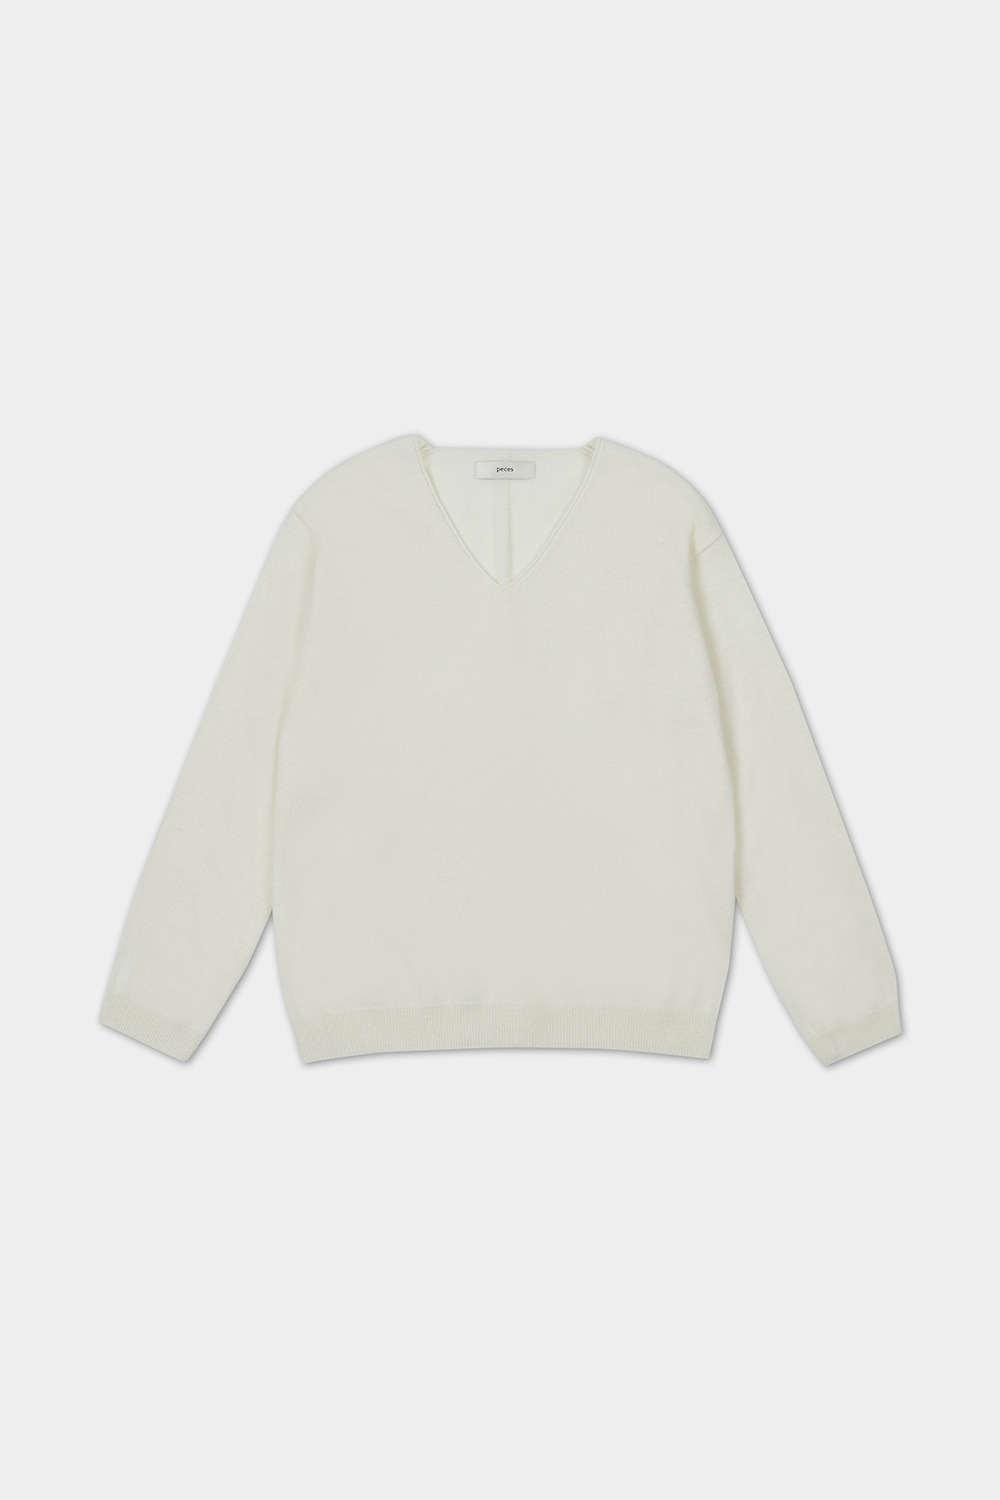 20FW CASHMERE BLENDED KNIT (IVORY) - 5COLOR